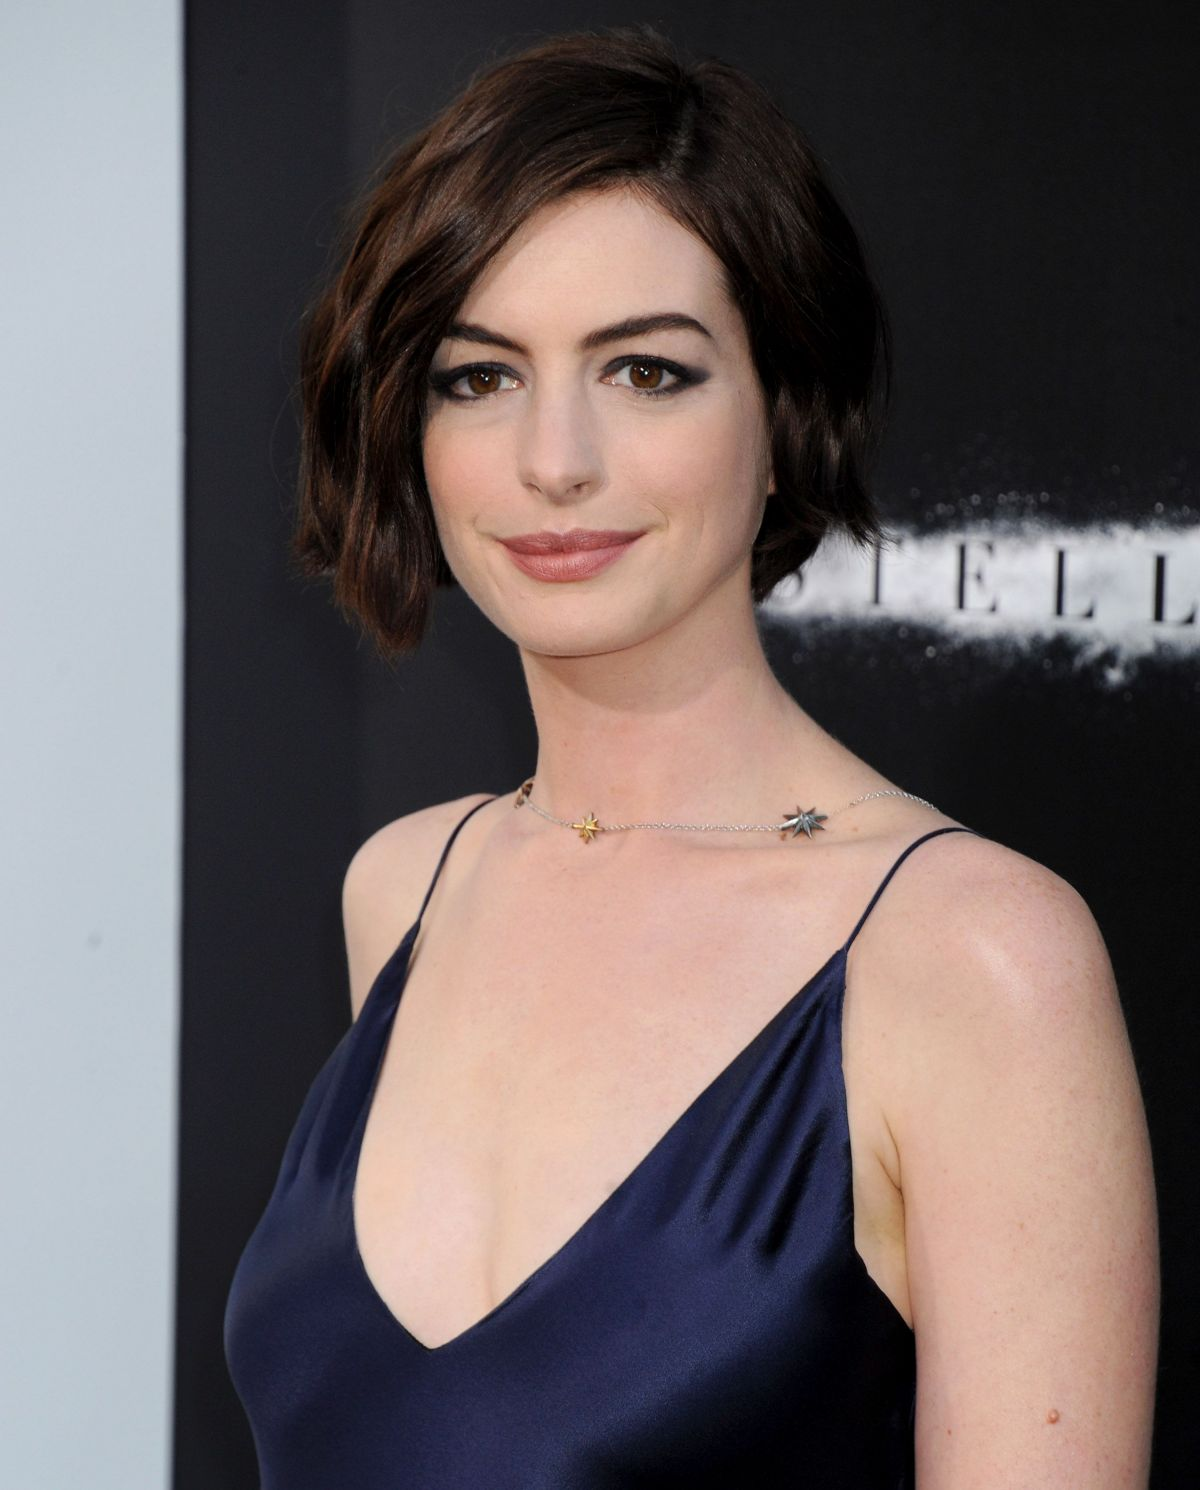 Anne Hathaway At The Hustle Premiere In Hollywood: Anne Hathaway At Interstellar Premiere In Hollywood